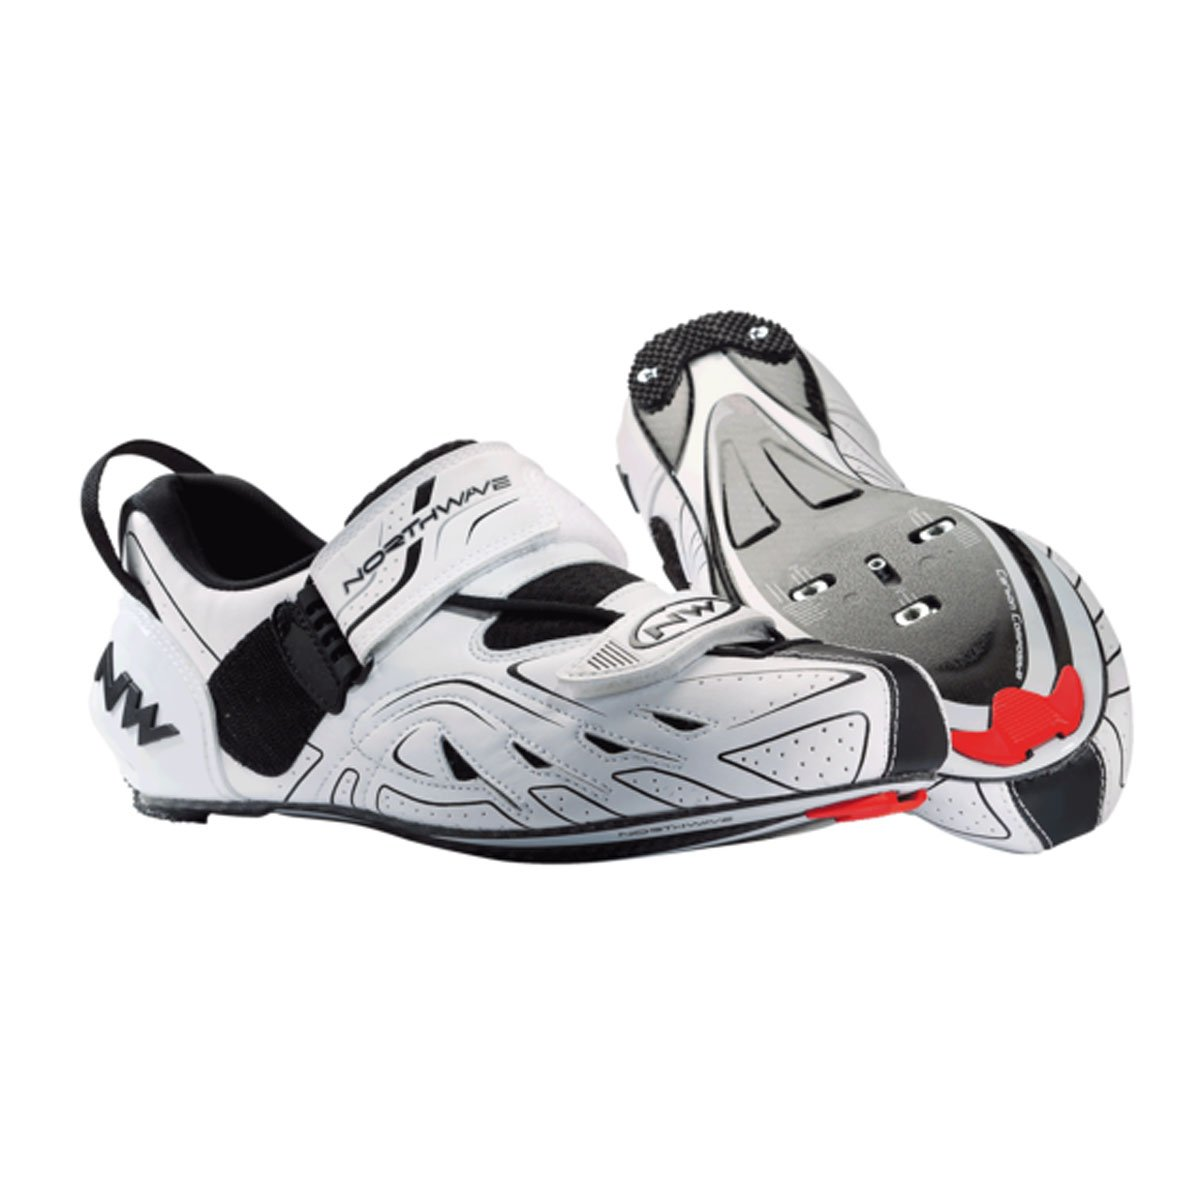 Northwave White-Black 2018 Tribute Cycling Shoe B0035A2GKO 8,5 US|White/Black